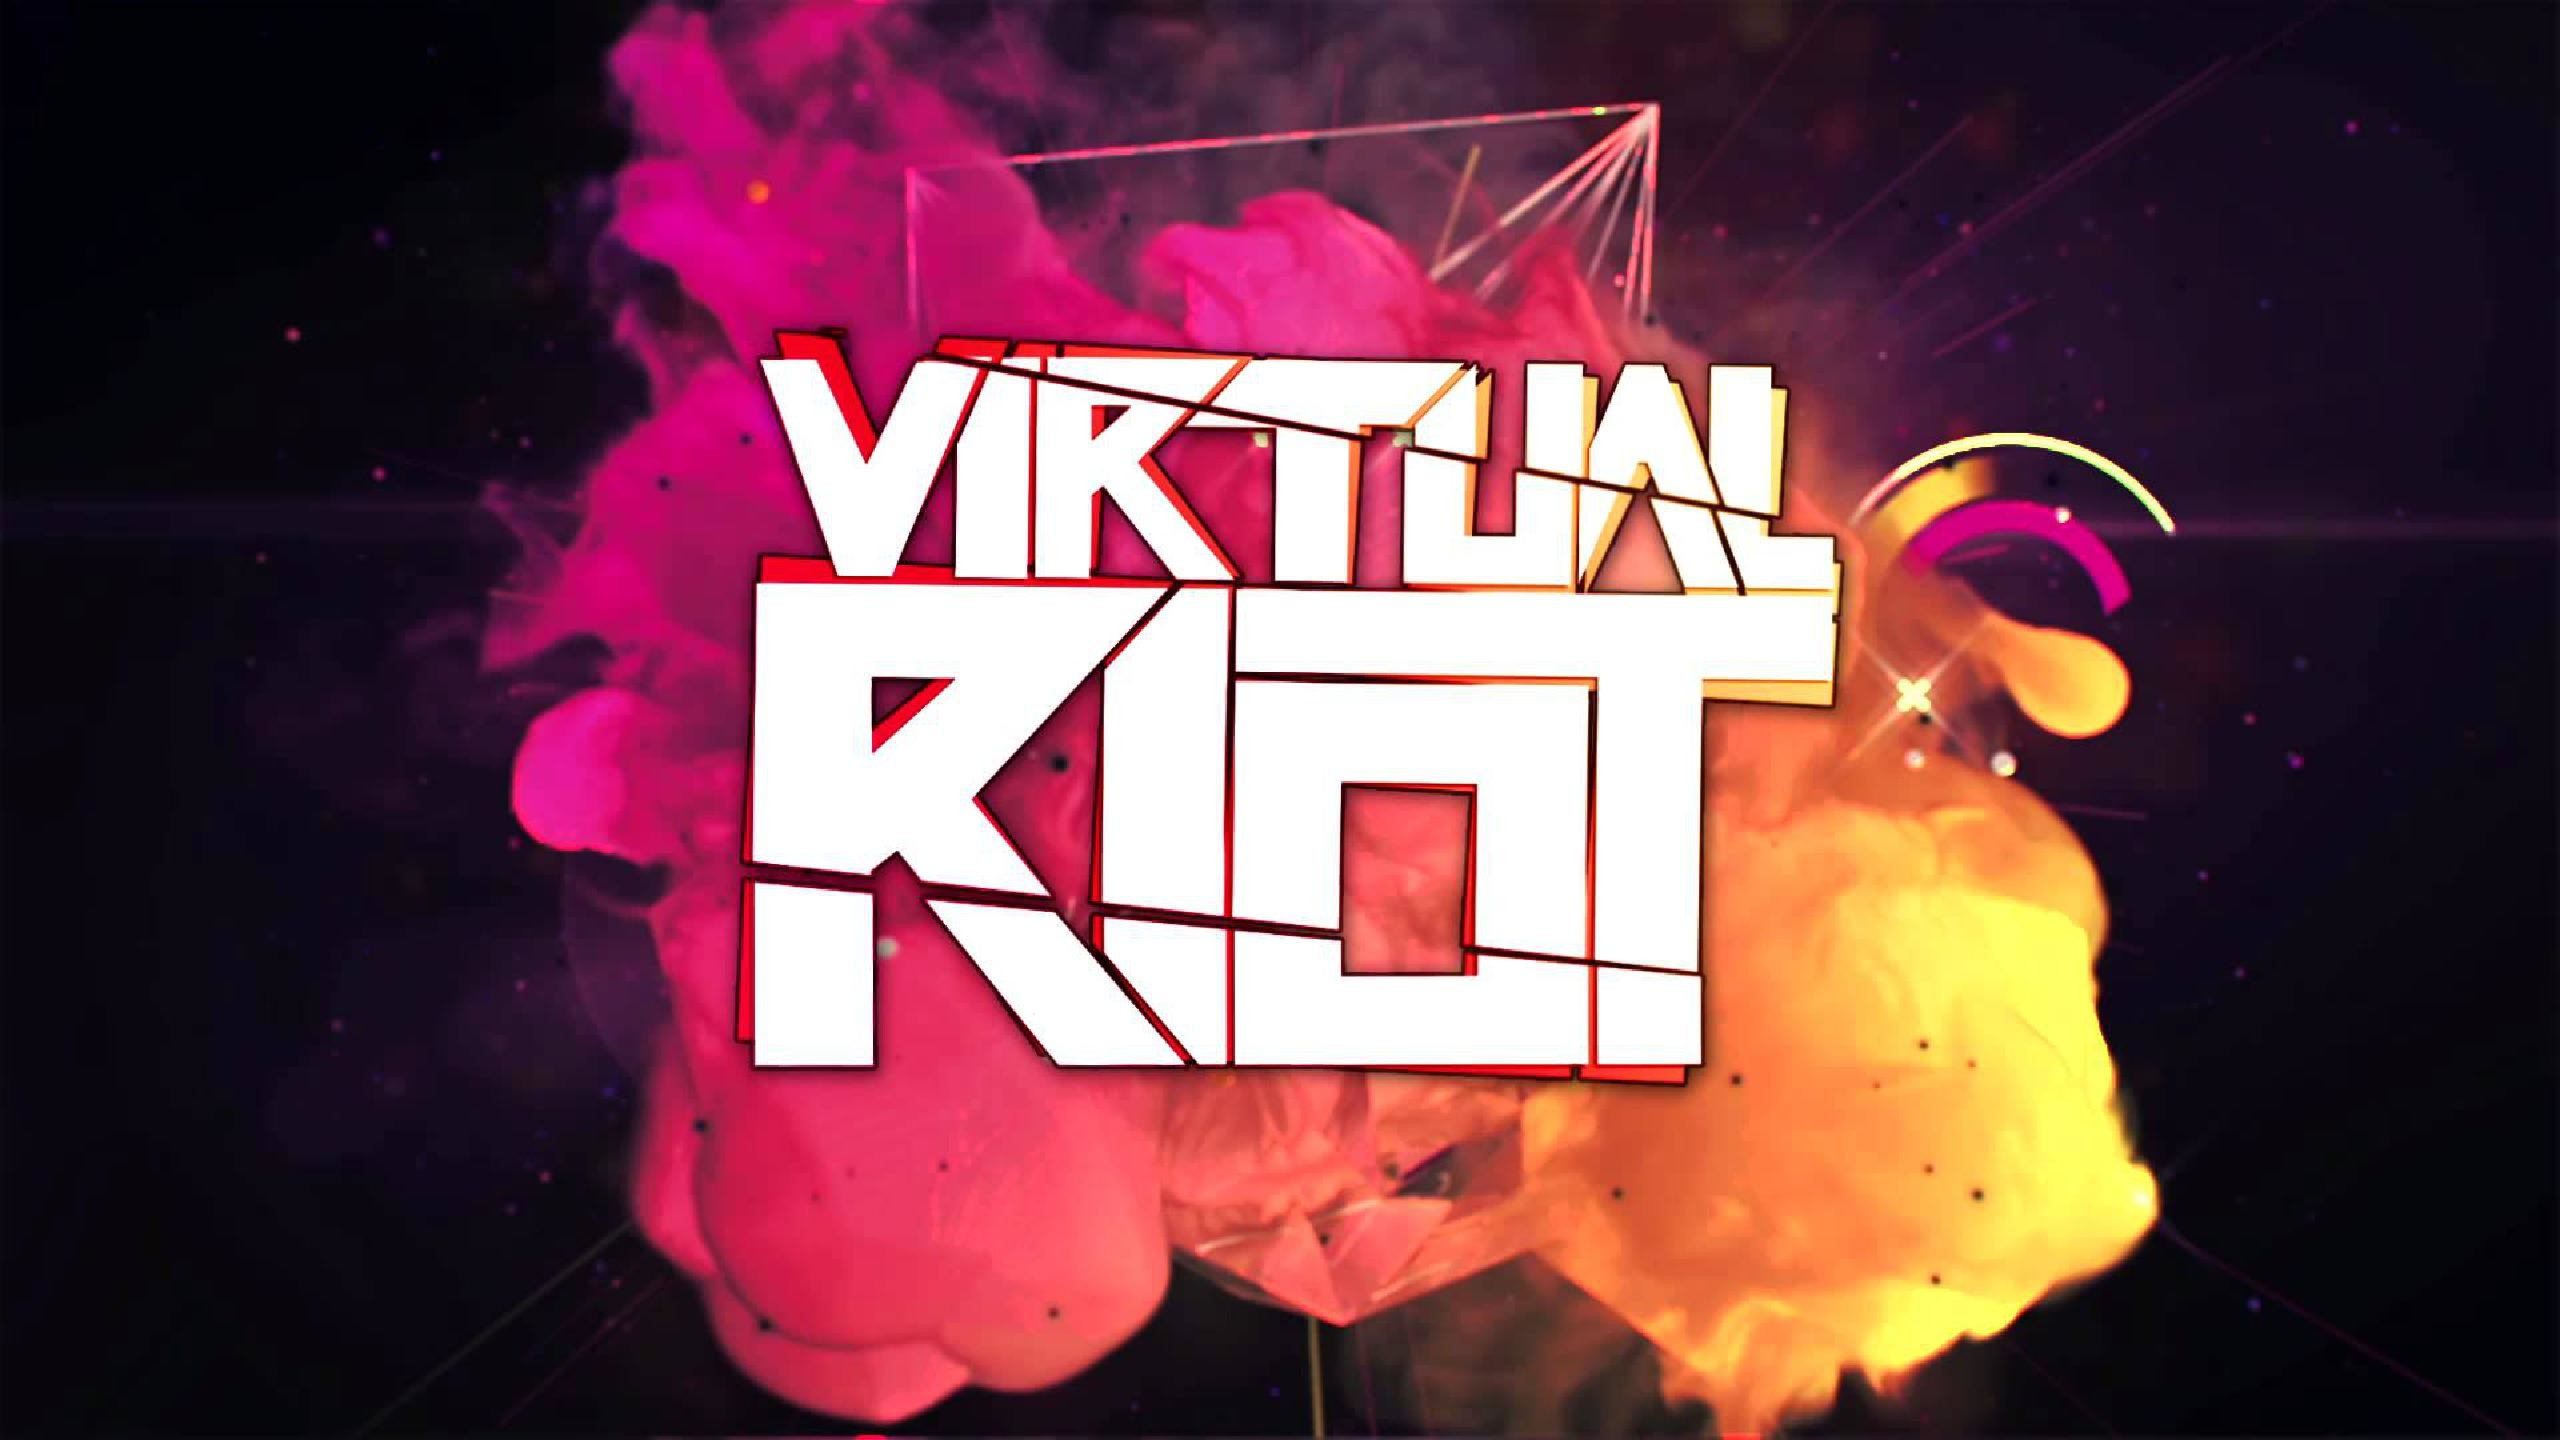 75+ Virtual Riot Wallpapers on WallpaperPlay.